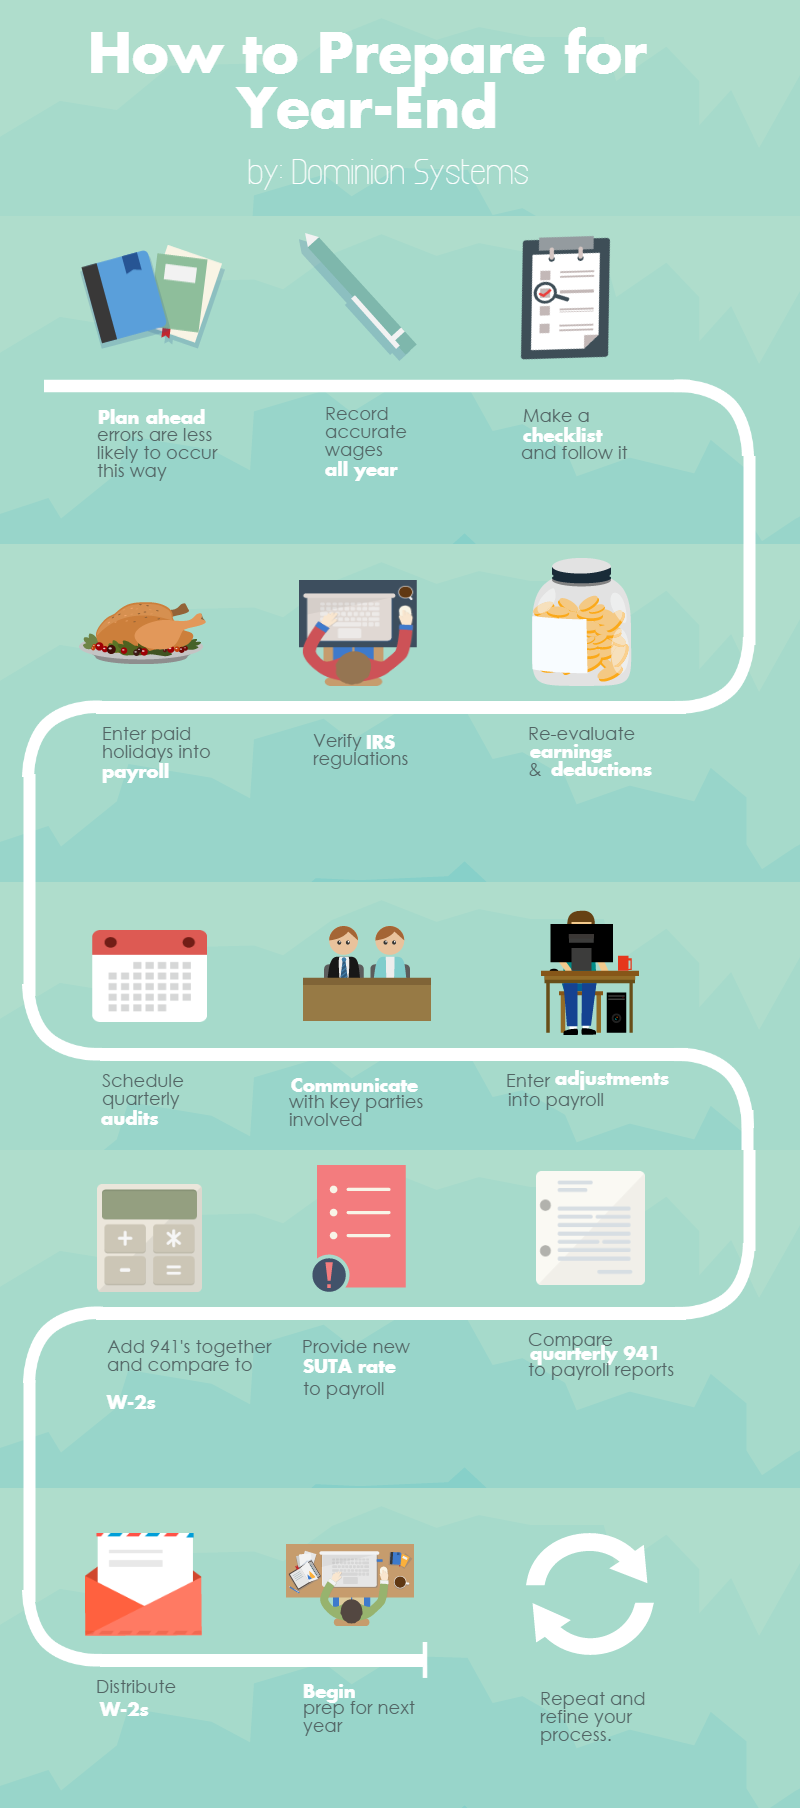 How-to-Prepare-for-Year-End-Infographic